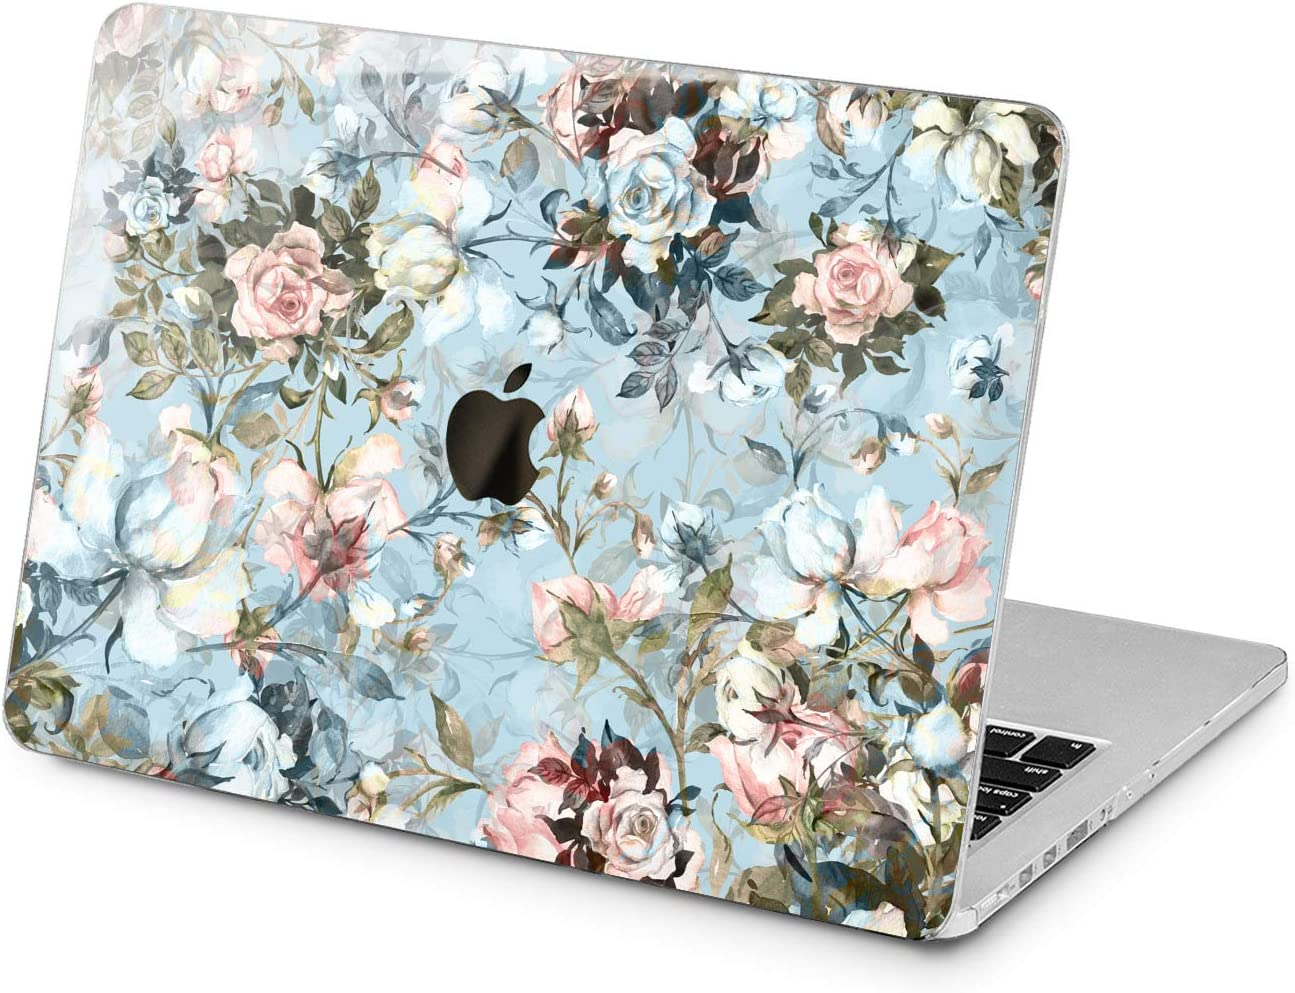 "Cavka Hard Shell Case for Apple MacBook Pro 13"" 2019 15"" 2018 Air 13"" 2020 Retina 2015 Mac 11"" Mac 12"" Watercolor Laptop Cover Spring Blossom Cute Print Plastic Aesthetic Rose Protective Blue Design"